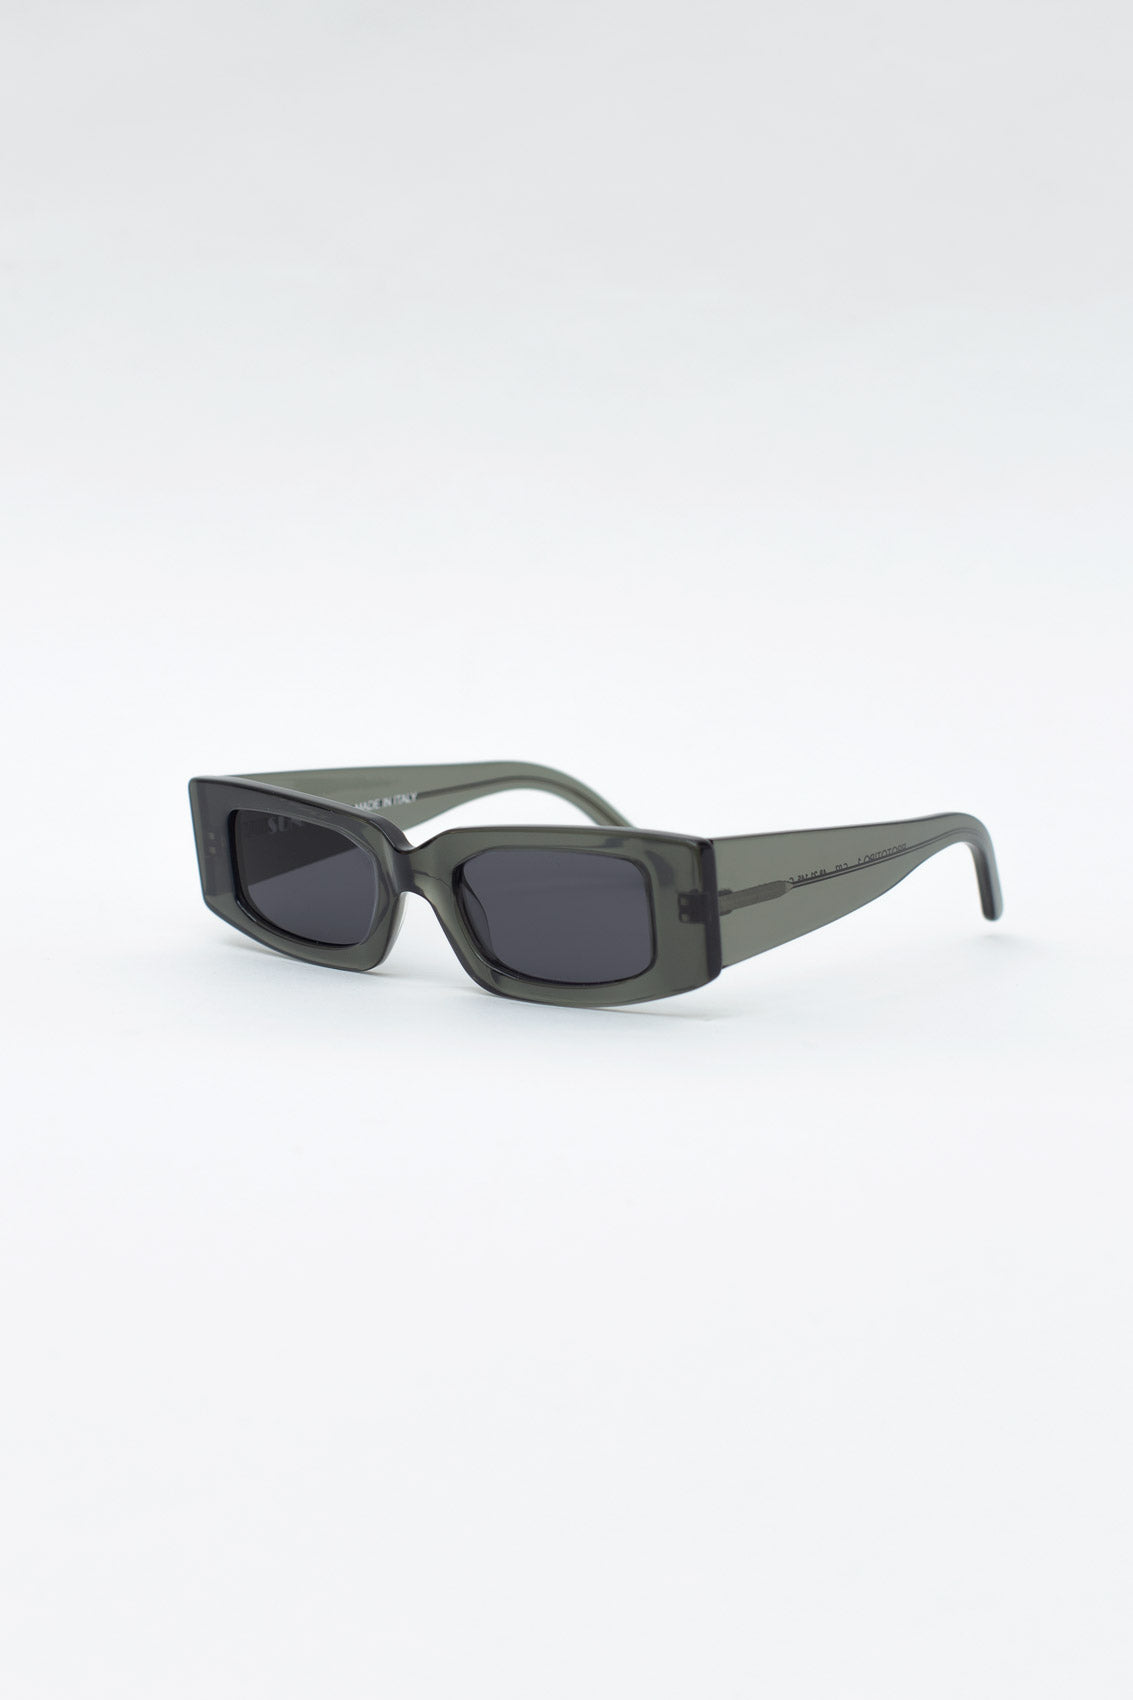 PROTOTIPO 1 DARK GREY SUNGLASSES